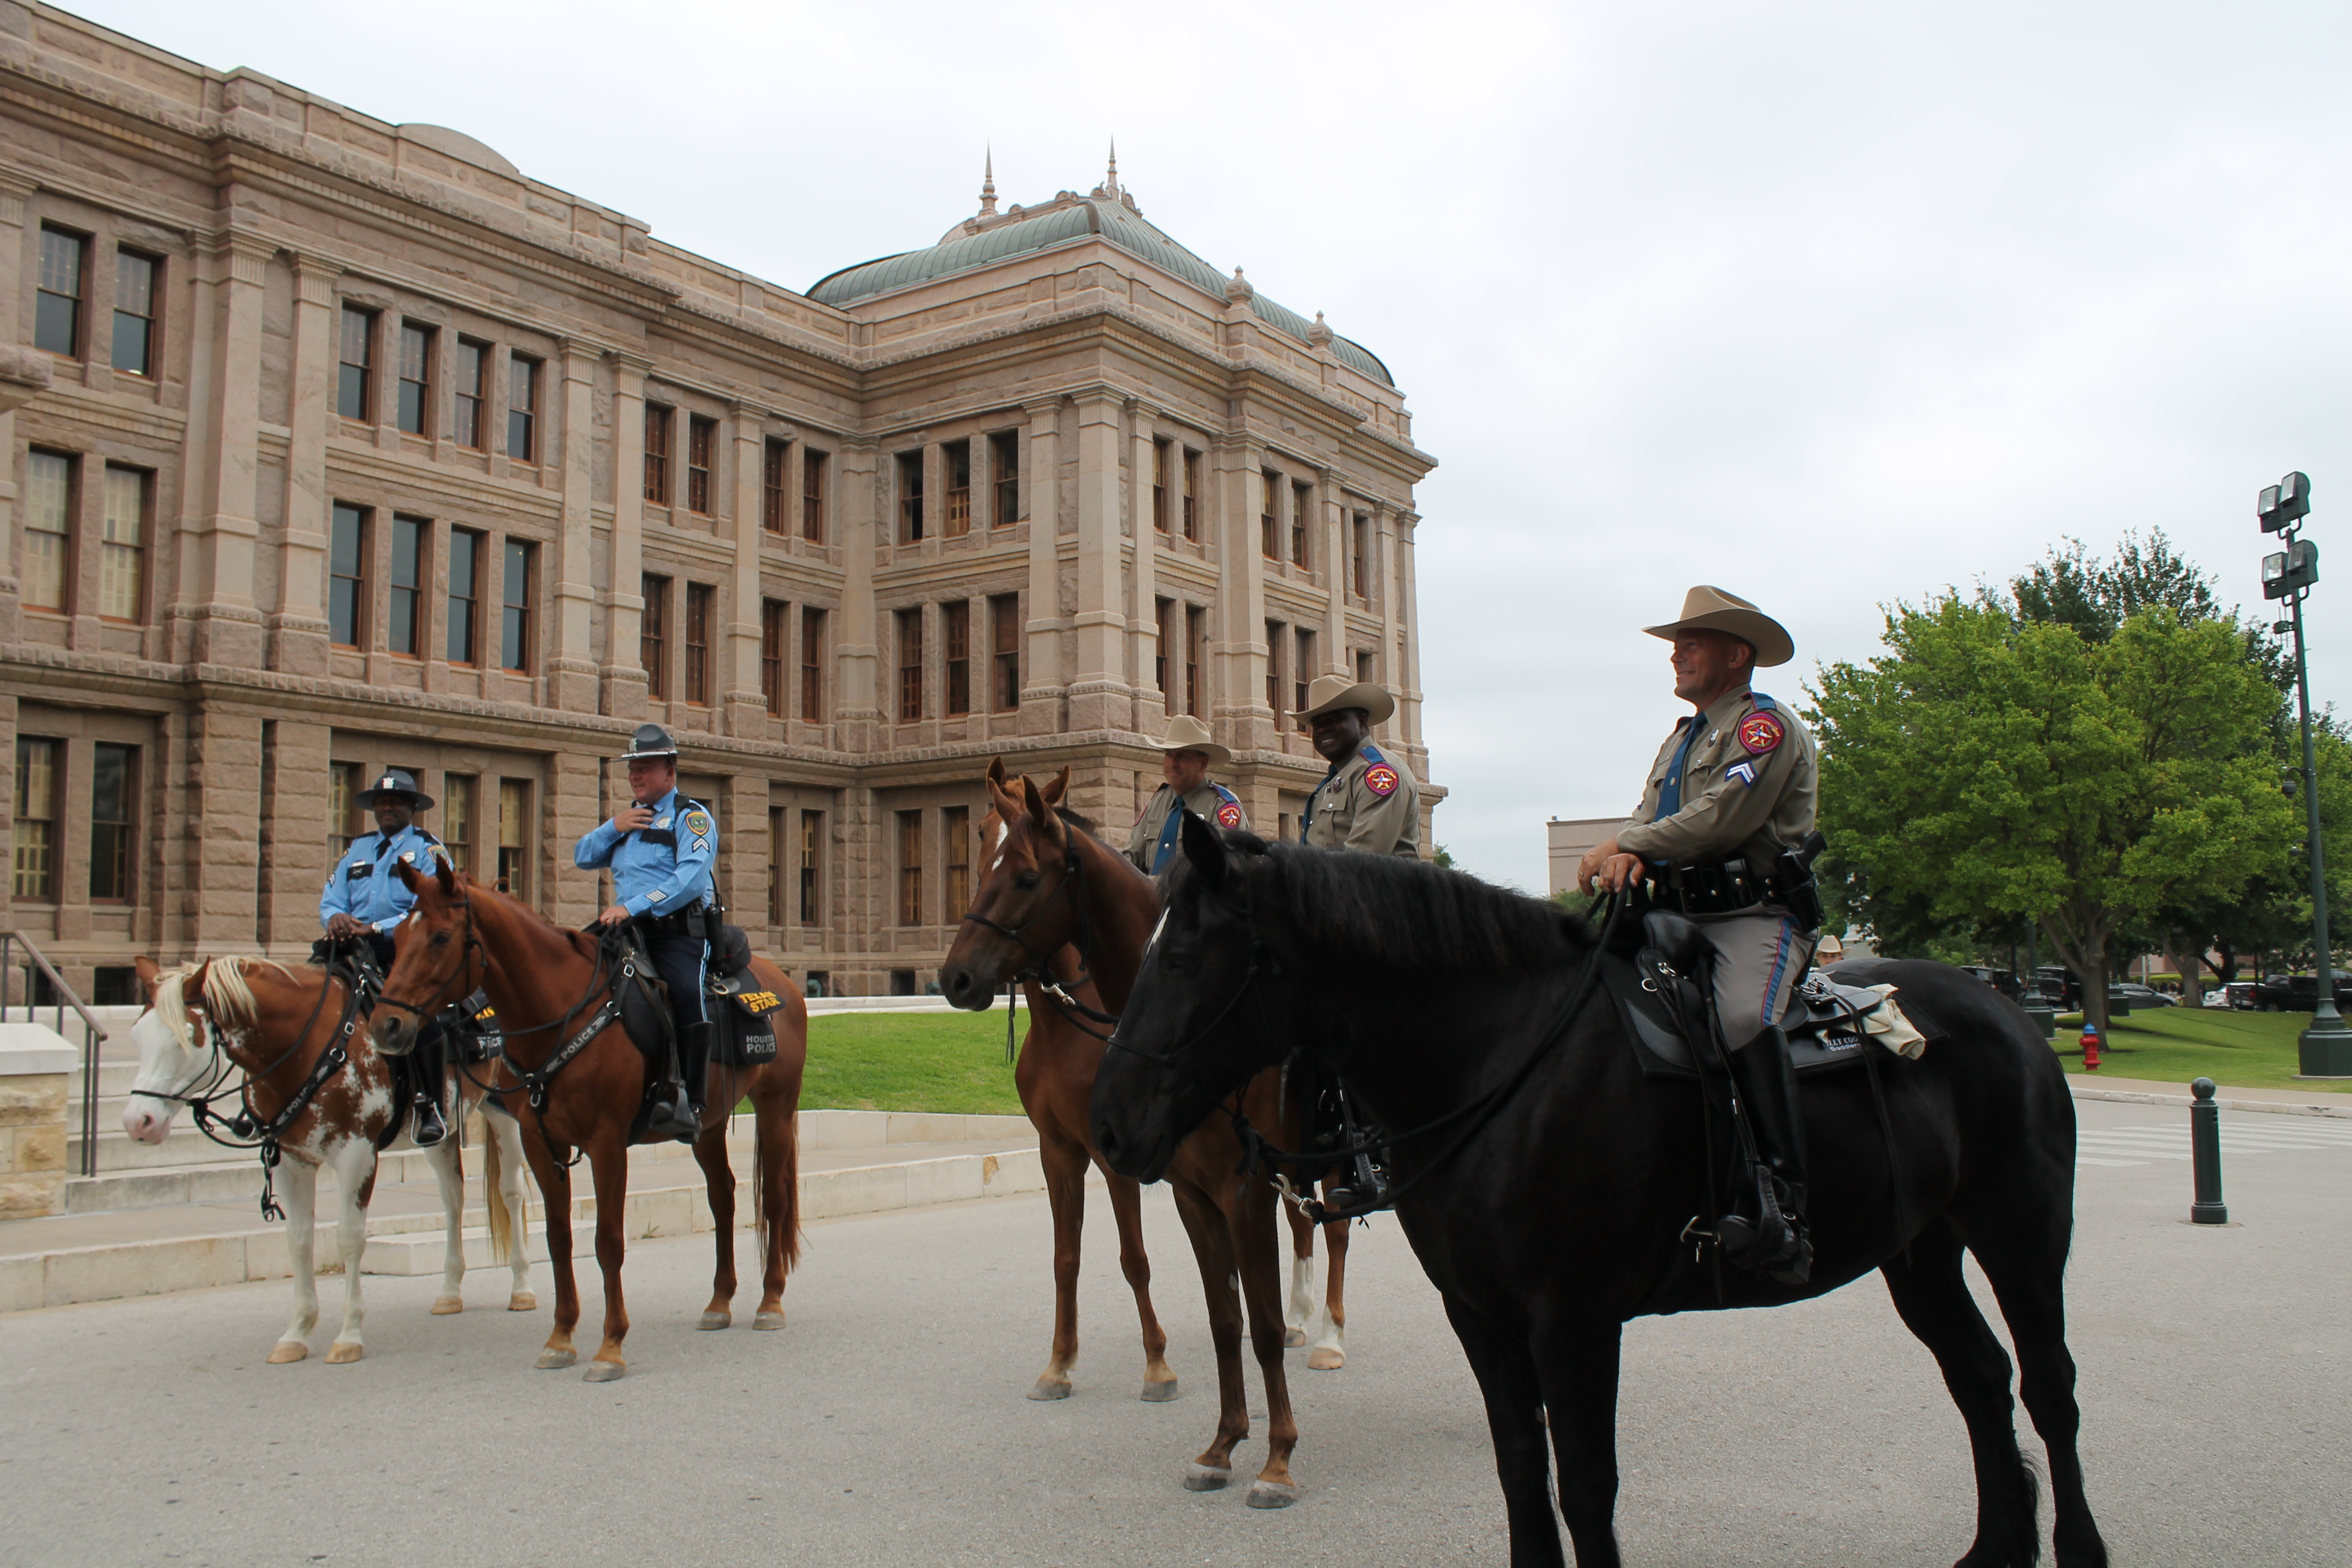 DPS Launches Mounted State Capitol Patrol Ahead Of 2015